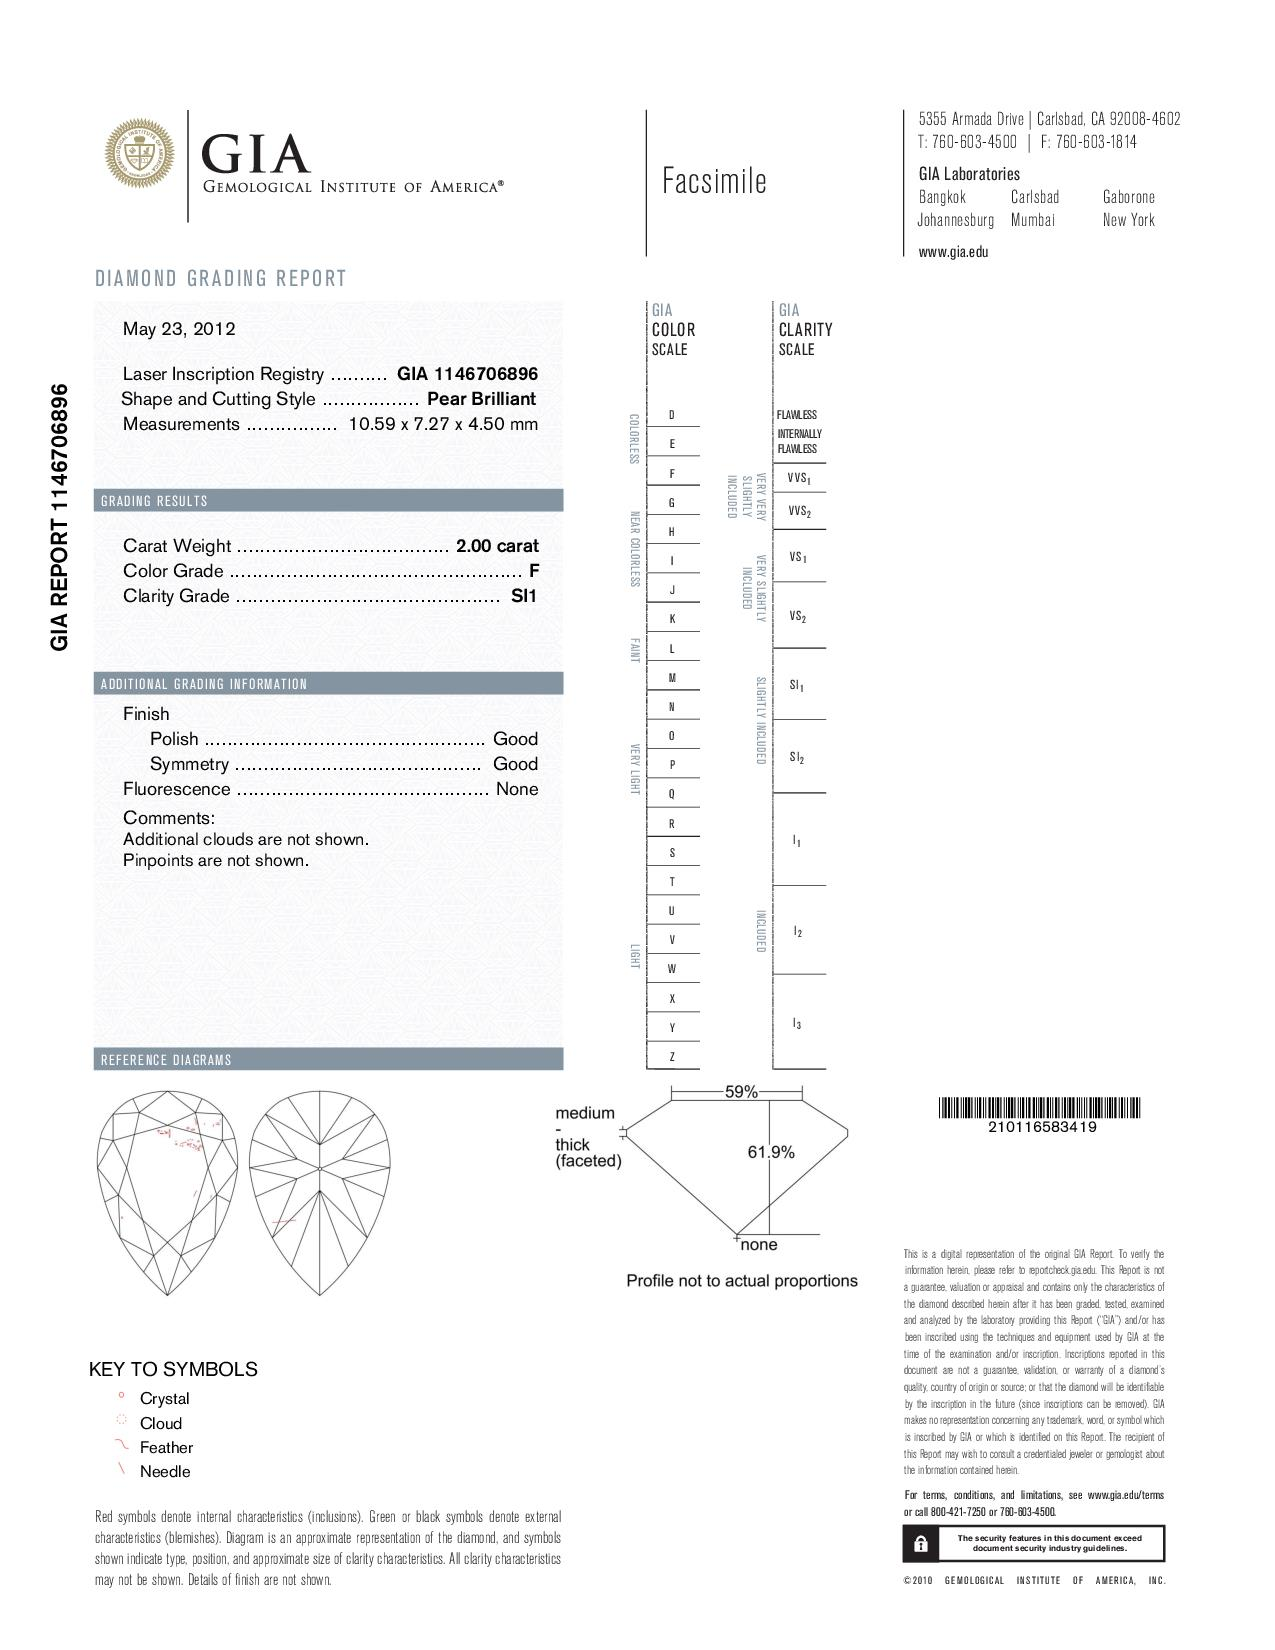 This is a 2.00 carat pear shape, F color, SI1 clarity natural diamond accompanied by a GIA grading report.